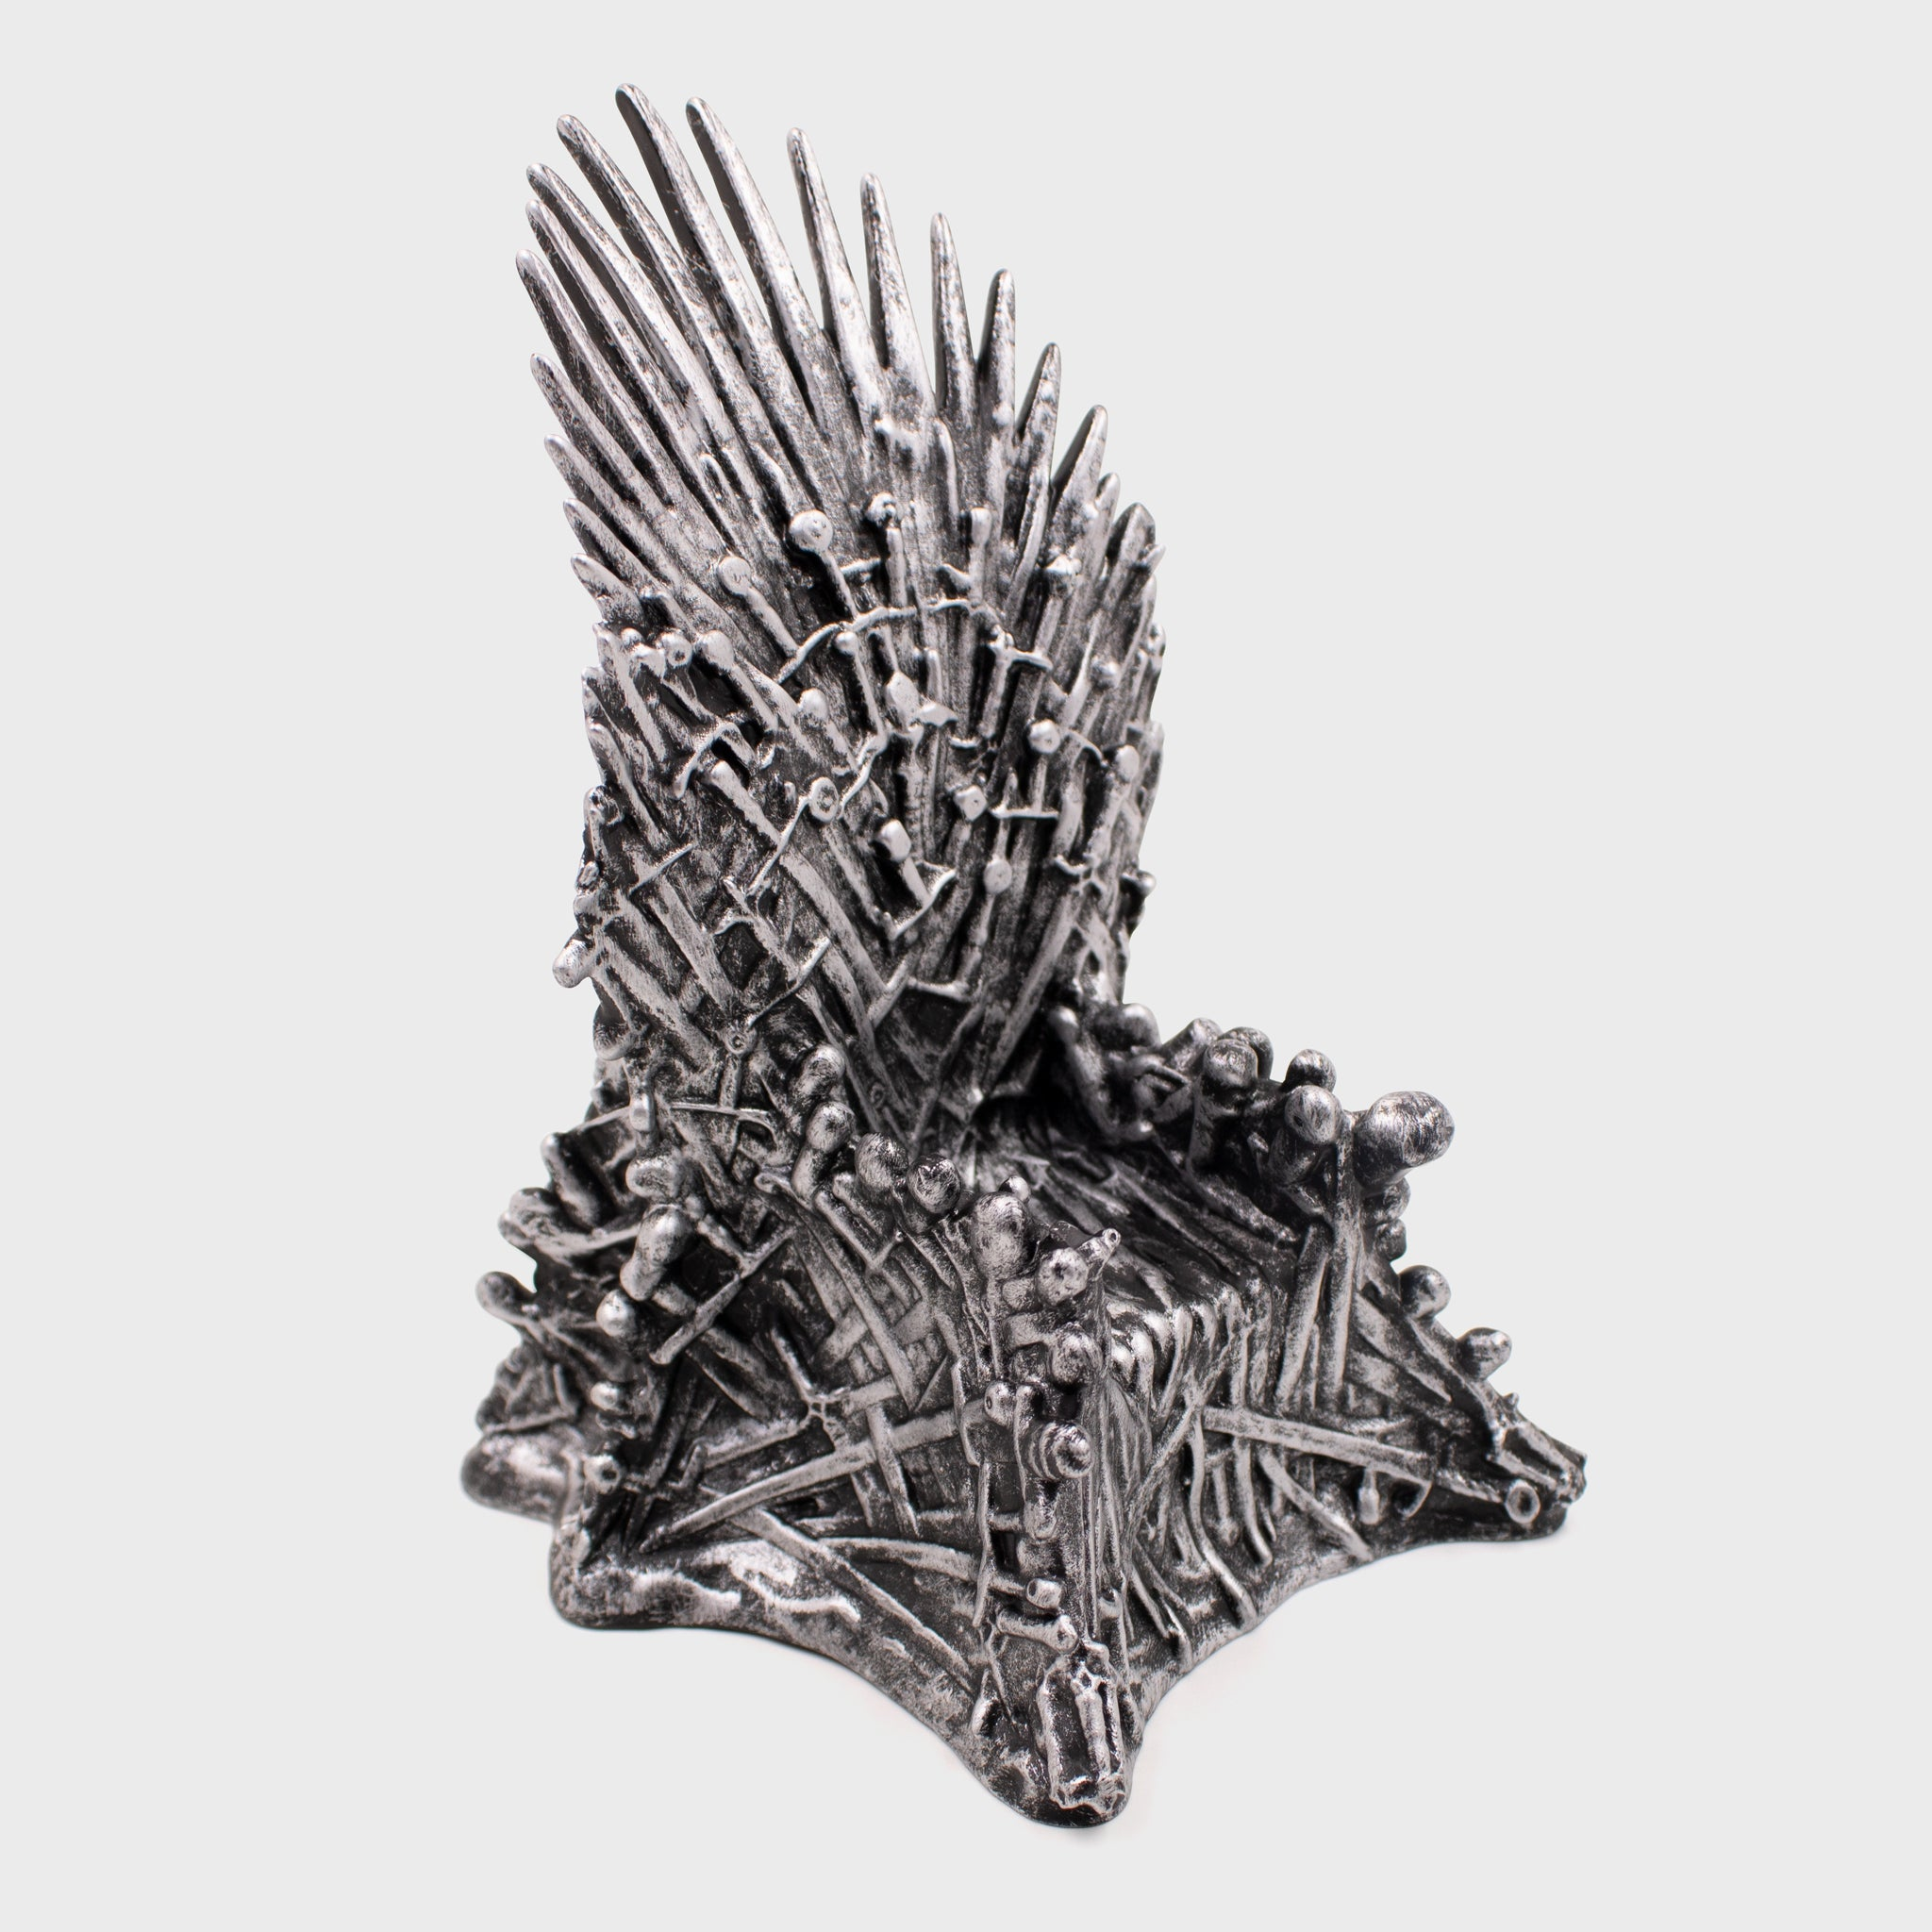 game of thrones got box iron throne replica vinyl figure collectibles exclusives collector collection culturefly